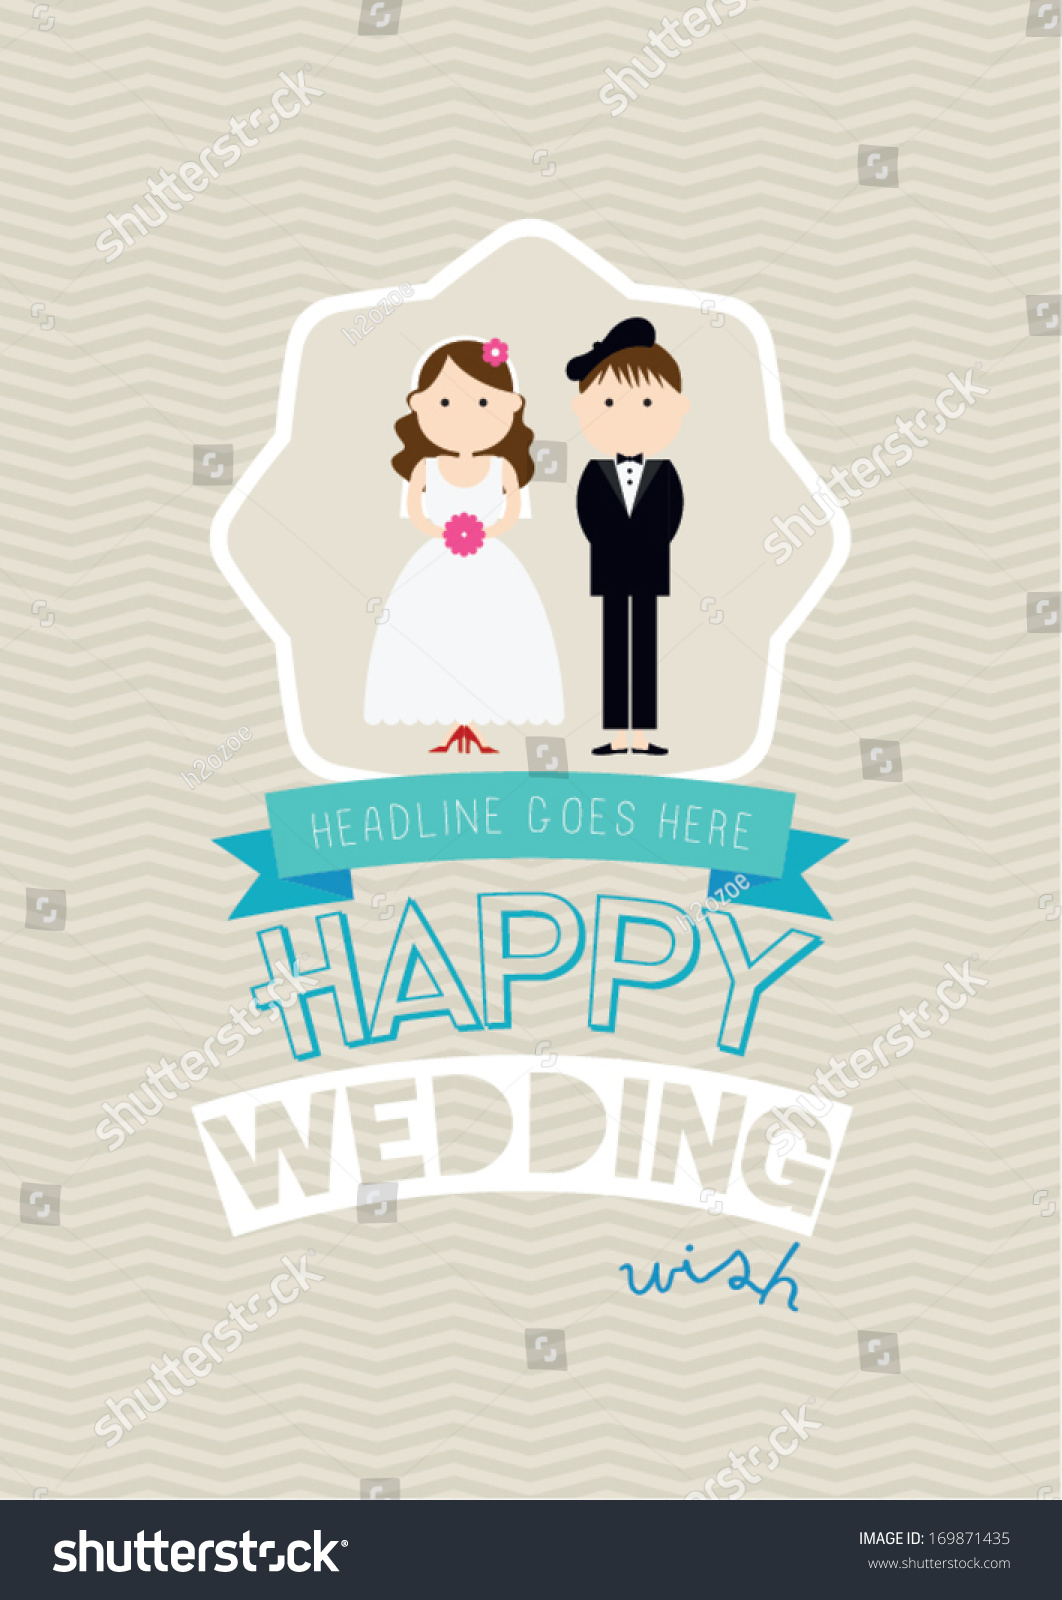 royalty free happy wedding poster template vector 169871435 stock